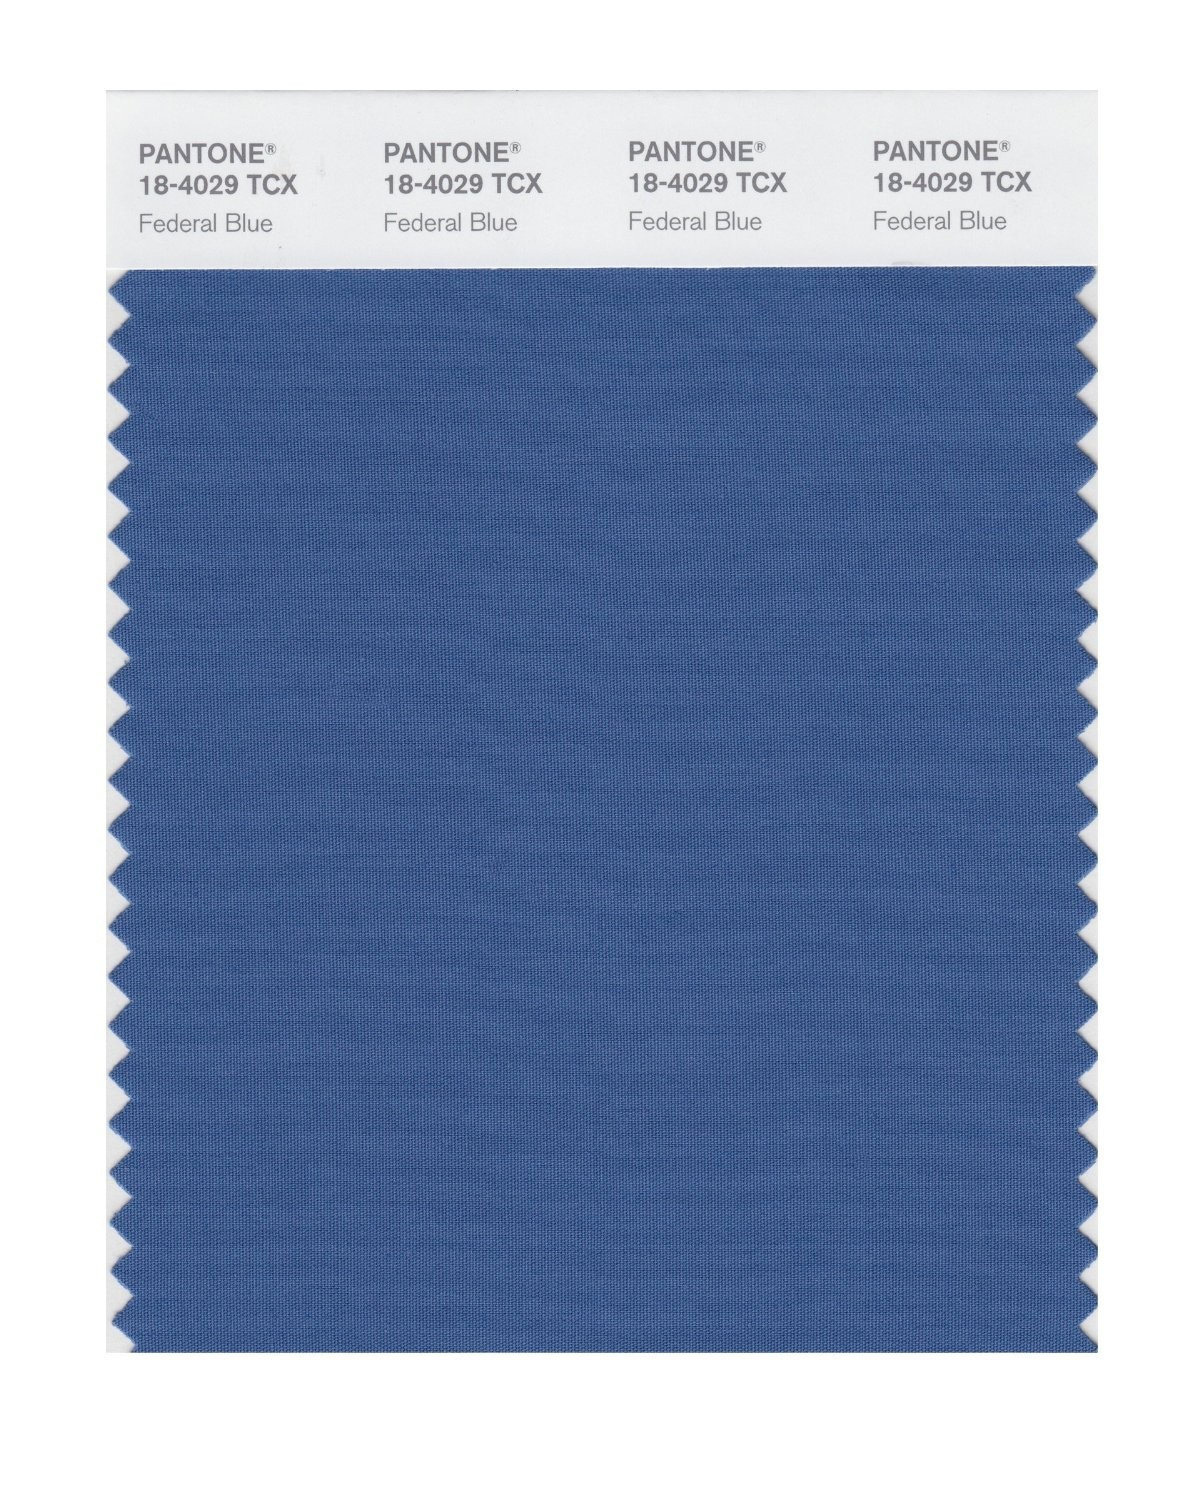 Pantone 18-4029 TCX Swatch Card Federal Blue